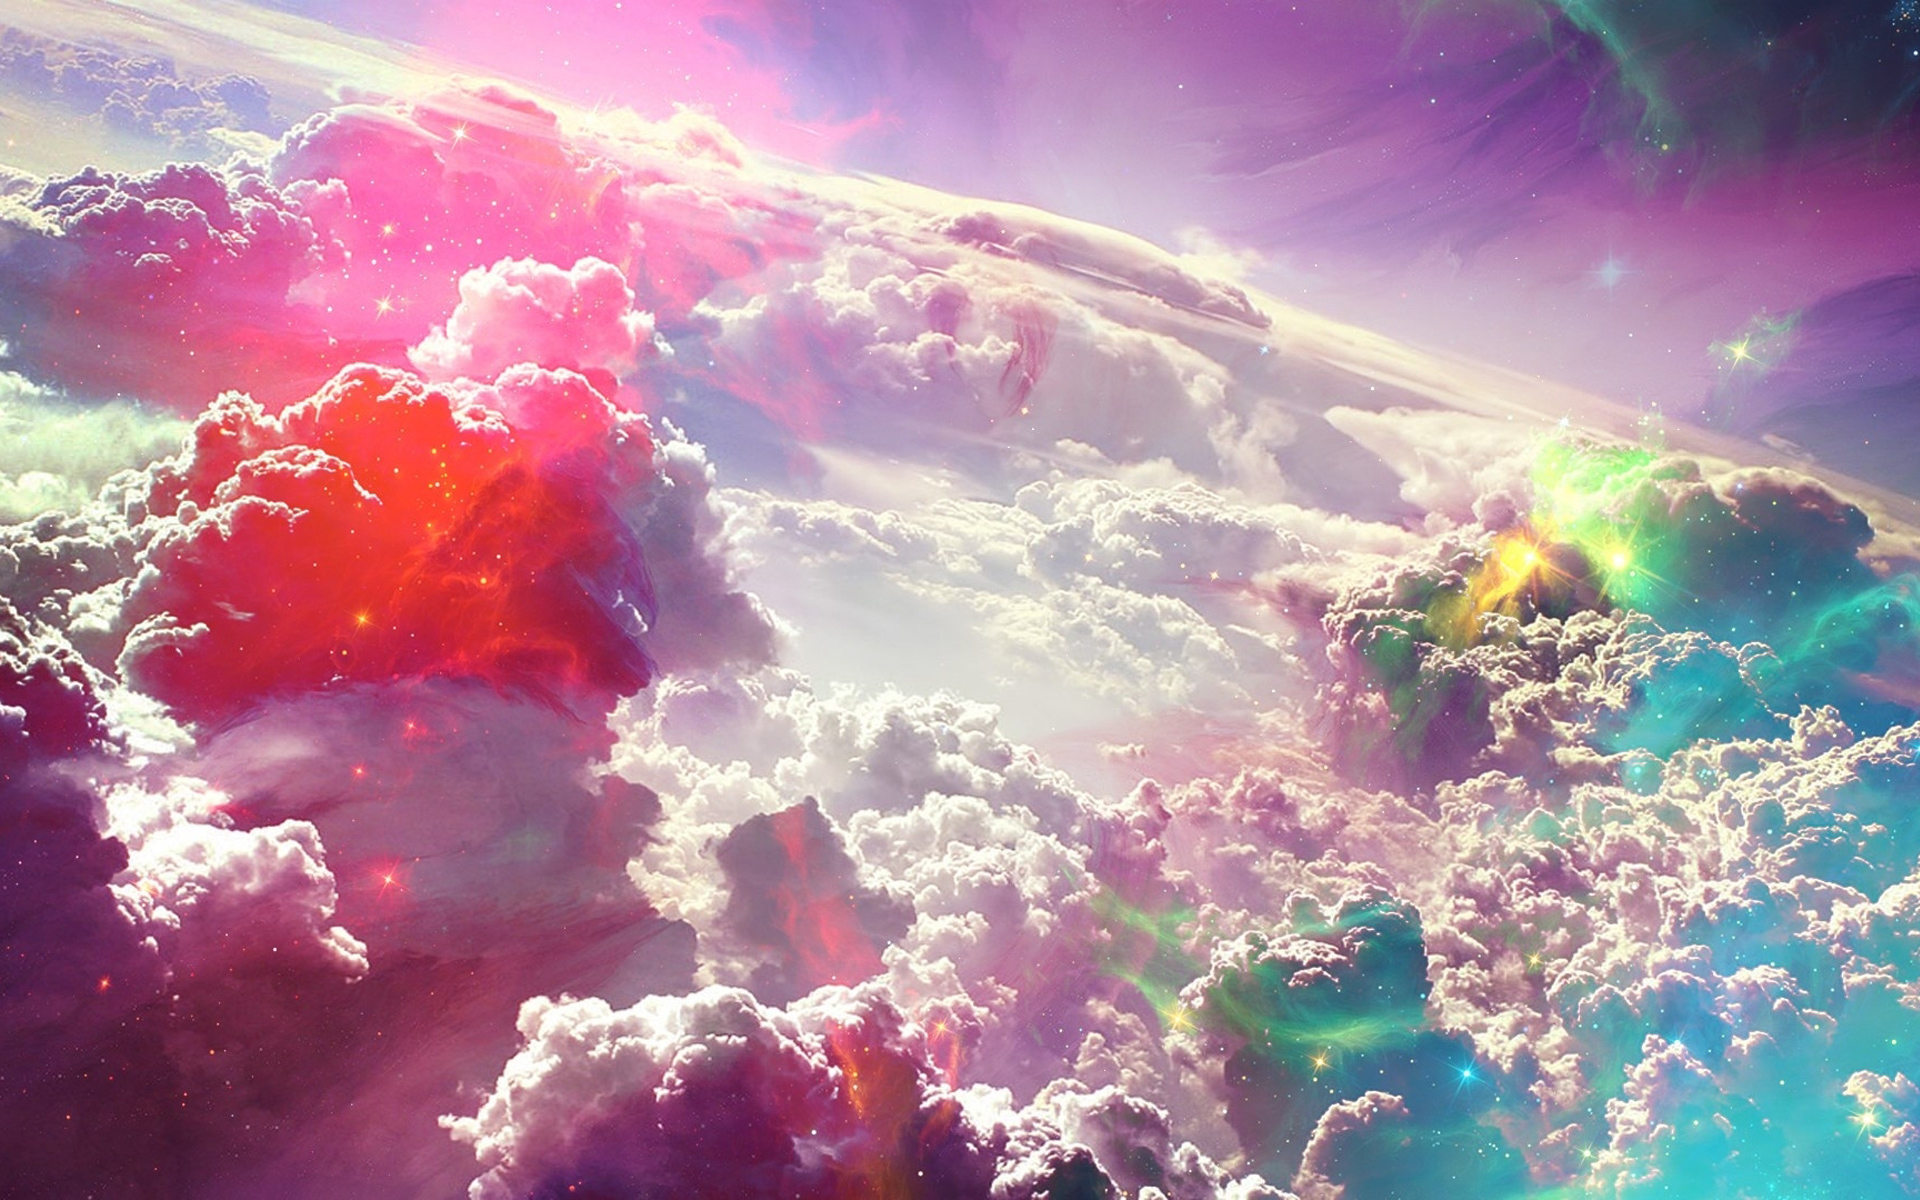 Colorful Fantasy Clouds Art HD Wallpaper 1920x1200